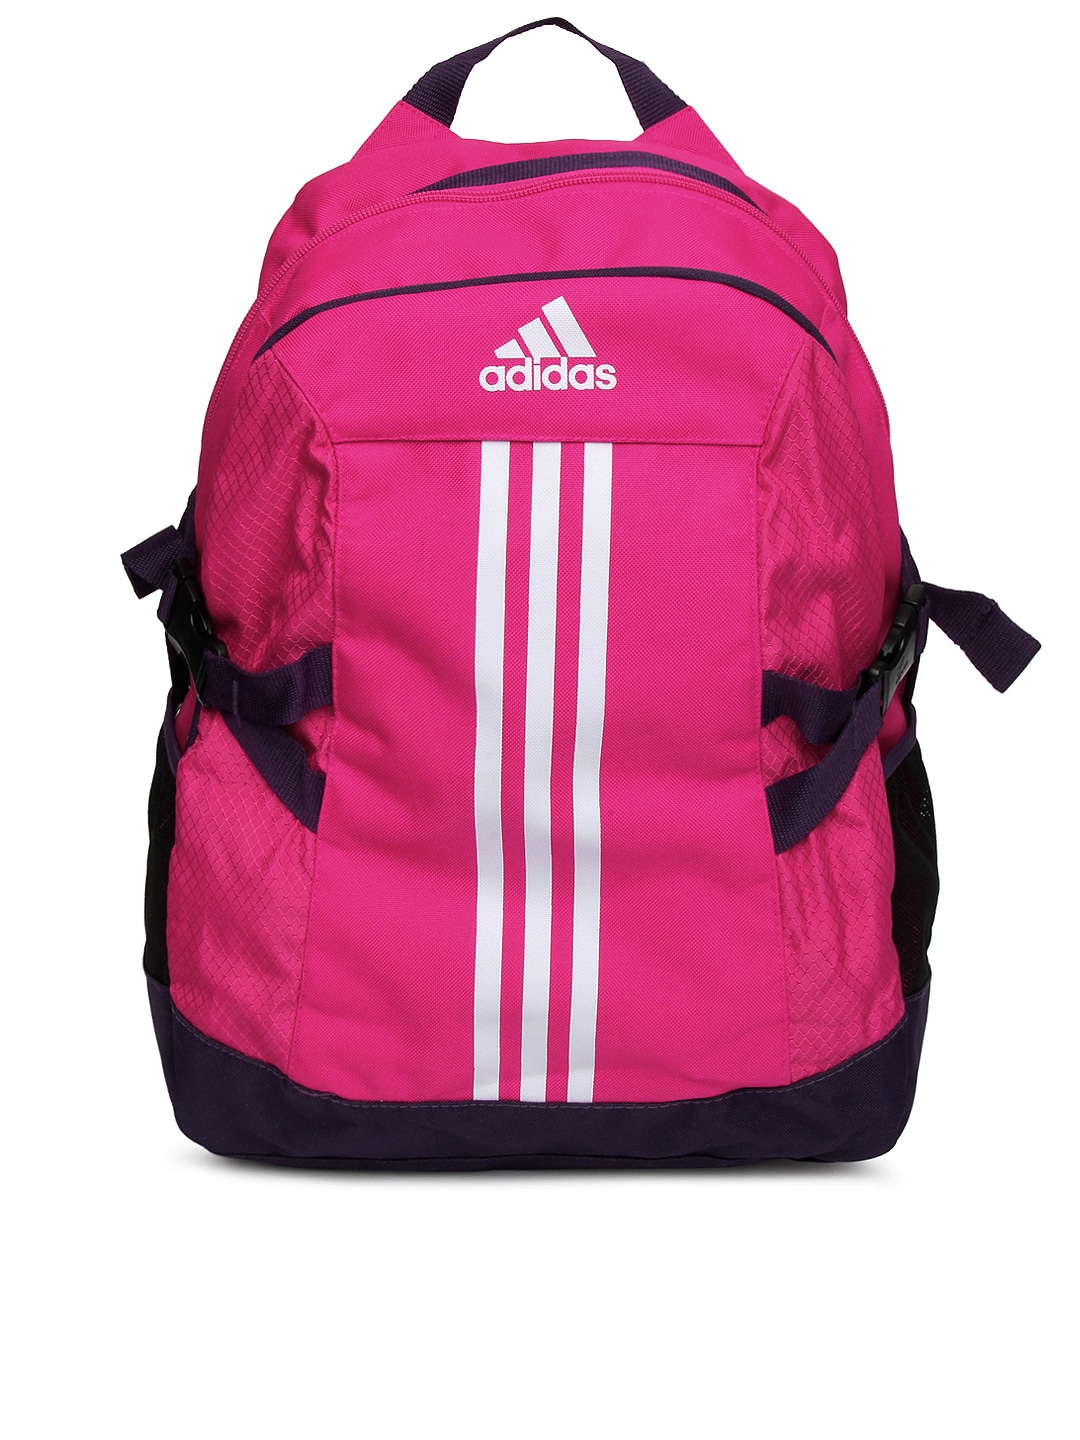 Adidas Purple And Pink Backpack - CEAGESP 895a2ff6ad